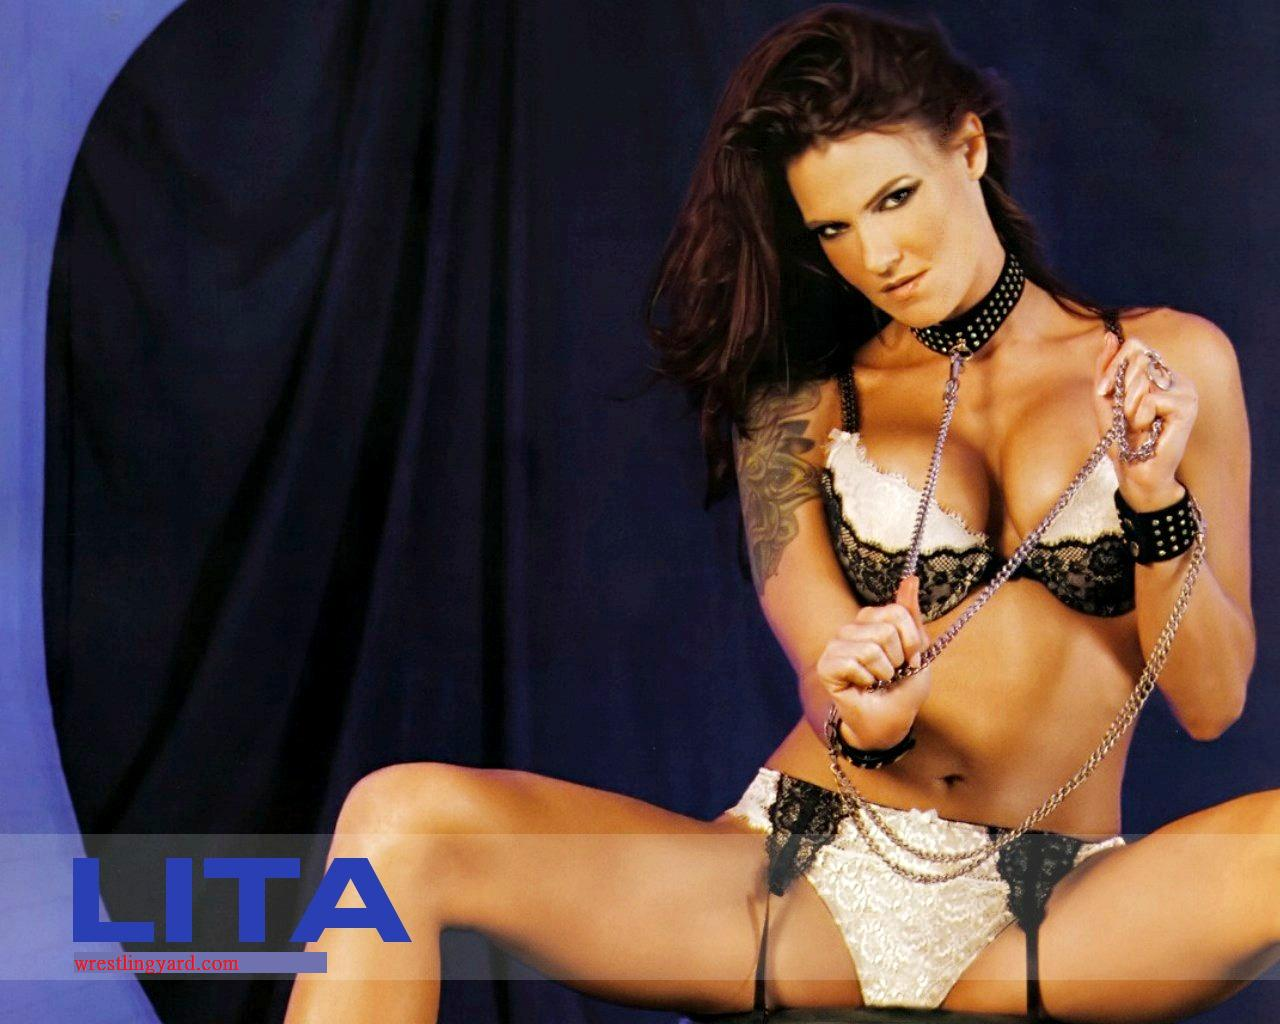 hottest diva wrestler naked ever